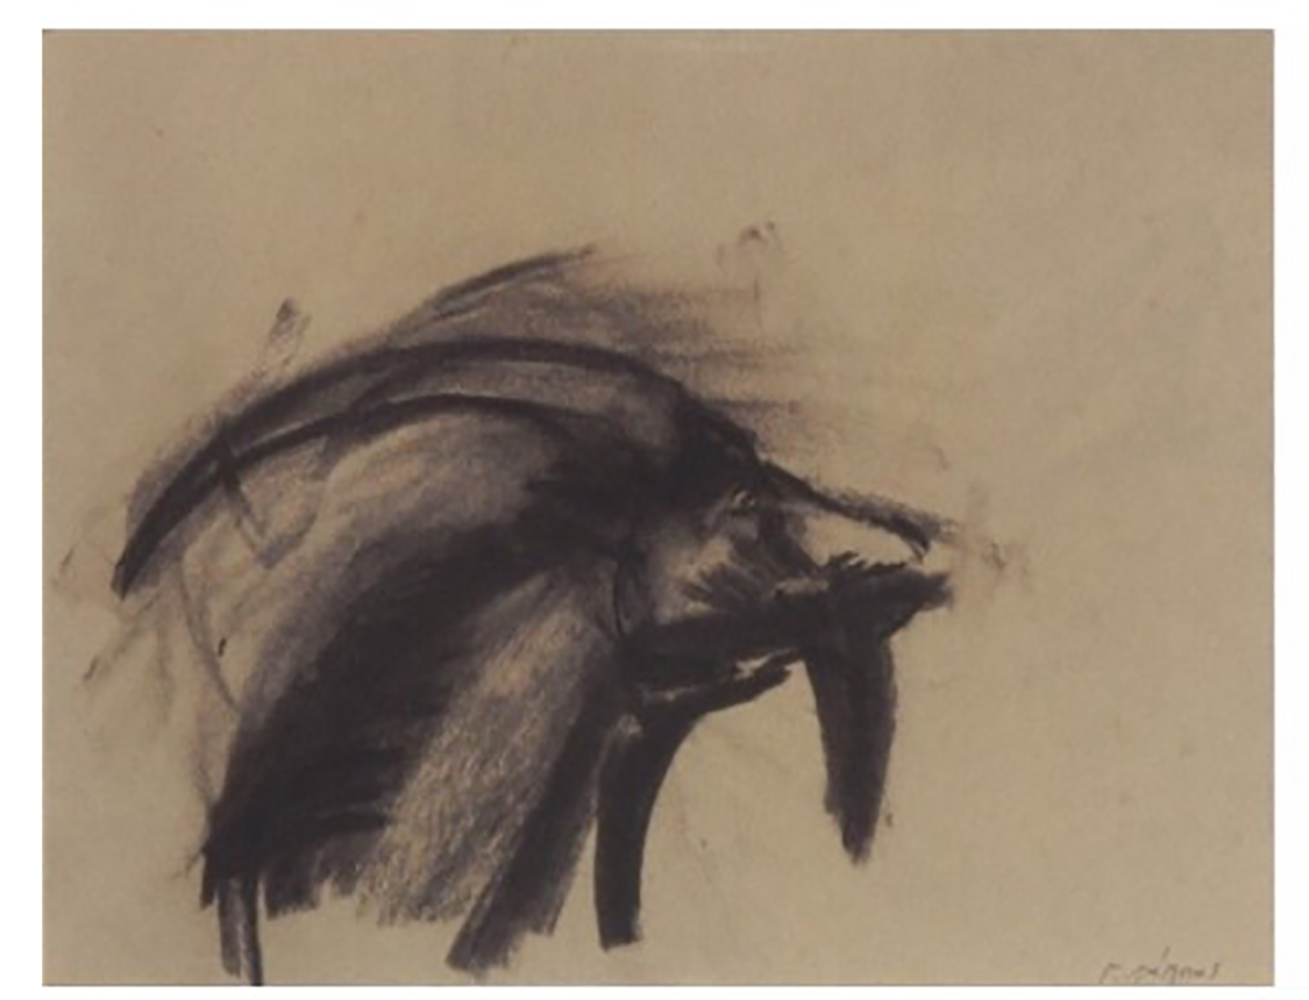 George Lappas (Greek, 1950-2016) (AR), 2 drawings in a frame, charcoal on paper - Image 3 of 3